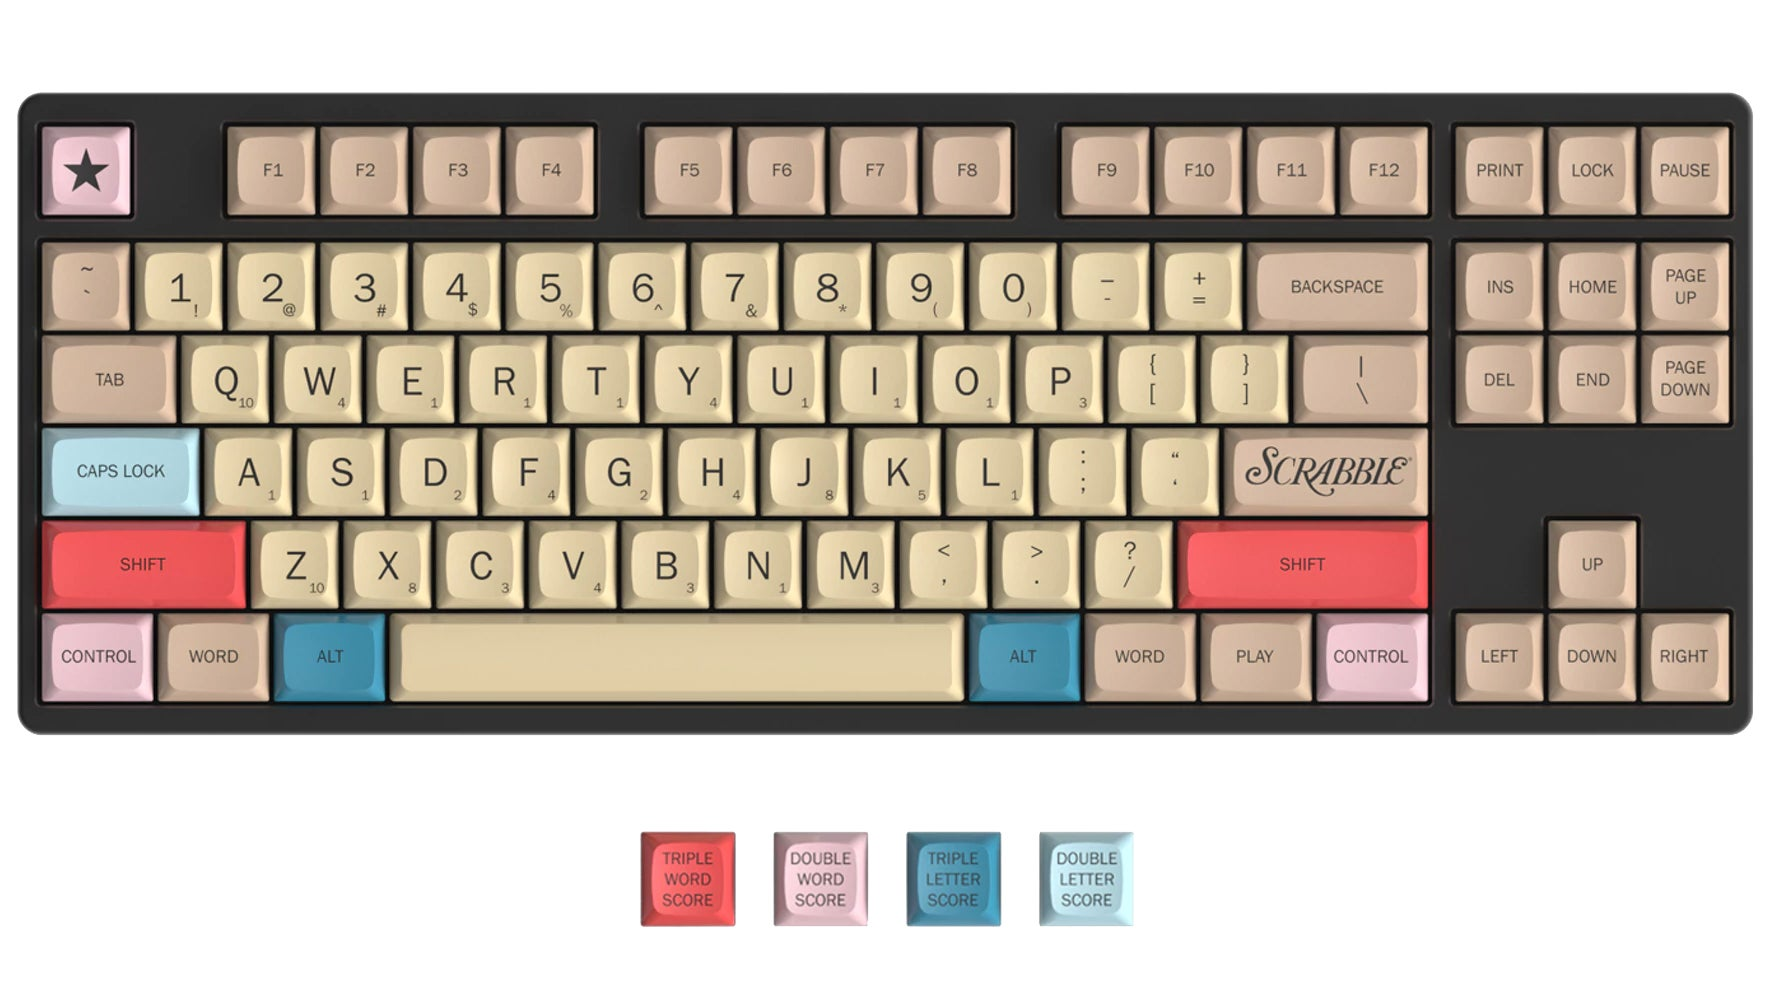 I Wish This Official Scrabble Keyboard Kept Score Of Every Email I Wrote